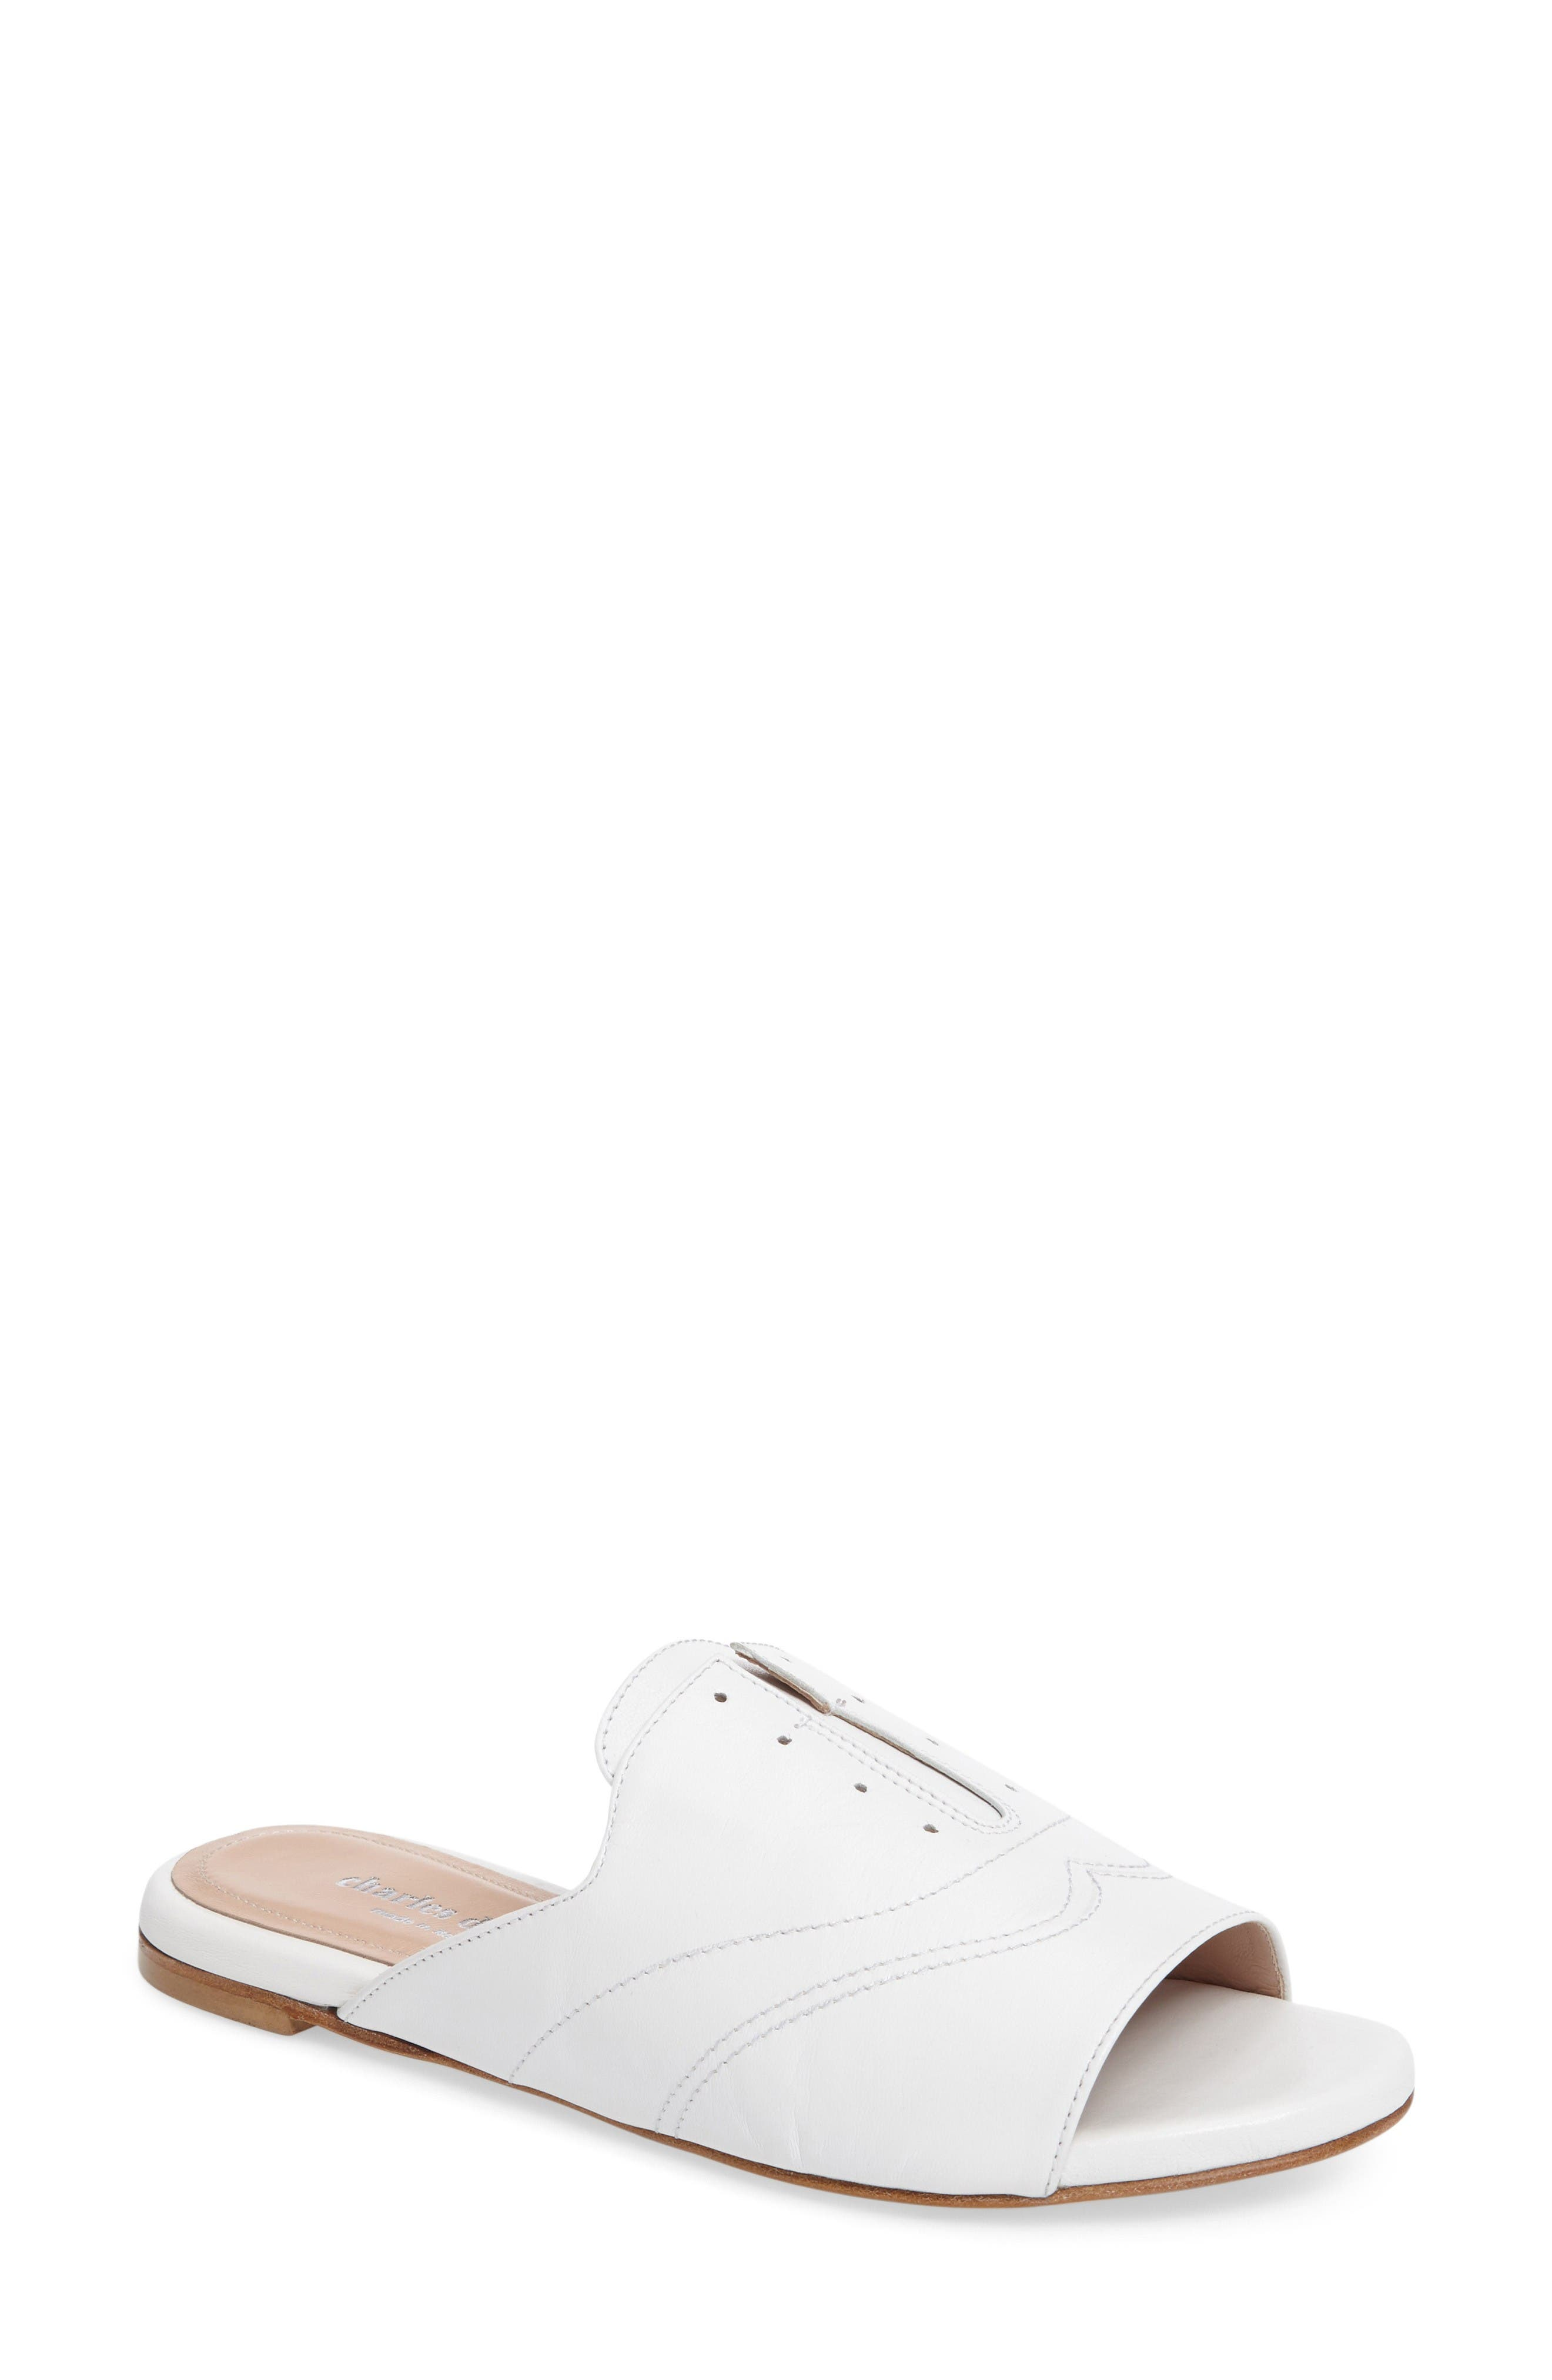 Smith Mule,                             Main thumbnail 1, color,                             White Leather